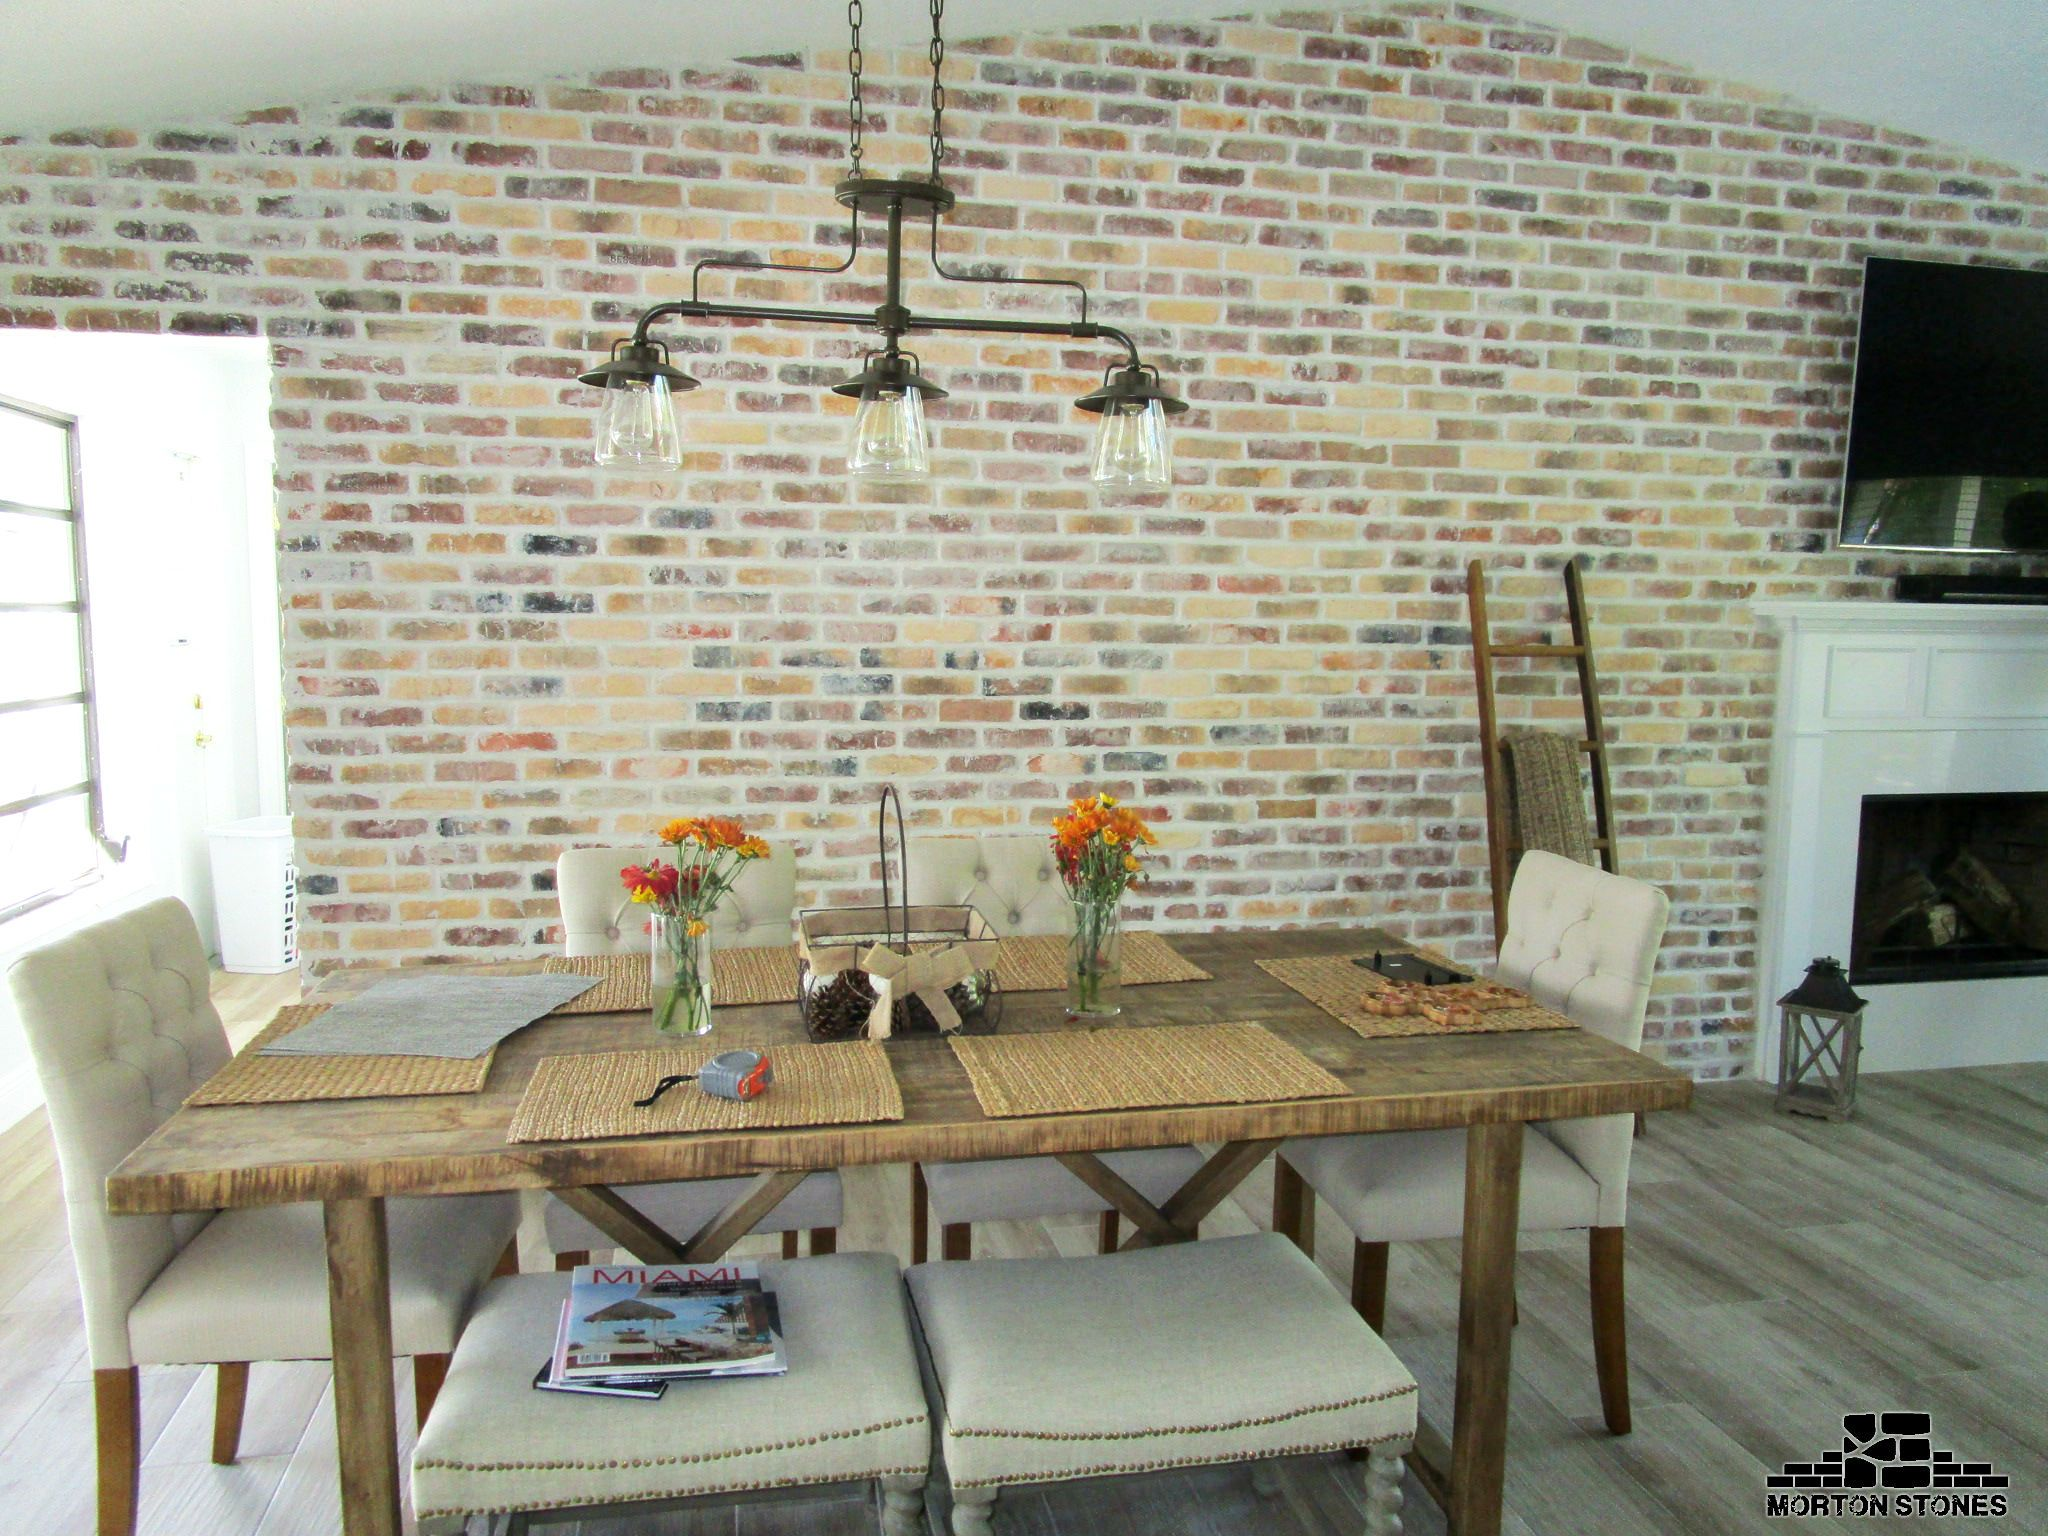 This An Example Of The Perfect French Country Dining Room With A Brick Accent Wall Mortonstones Tiles Rustic Thinbrick Home Decor Redbrick